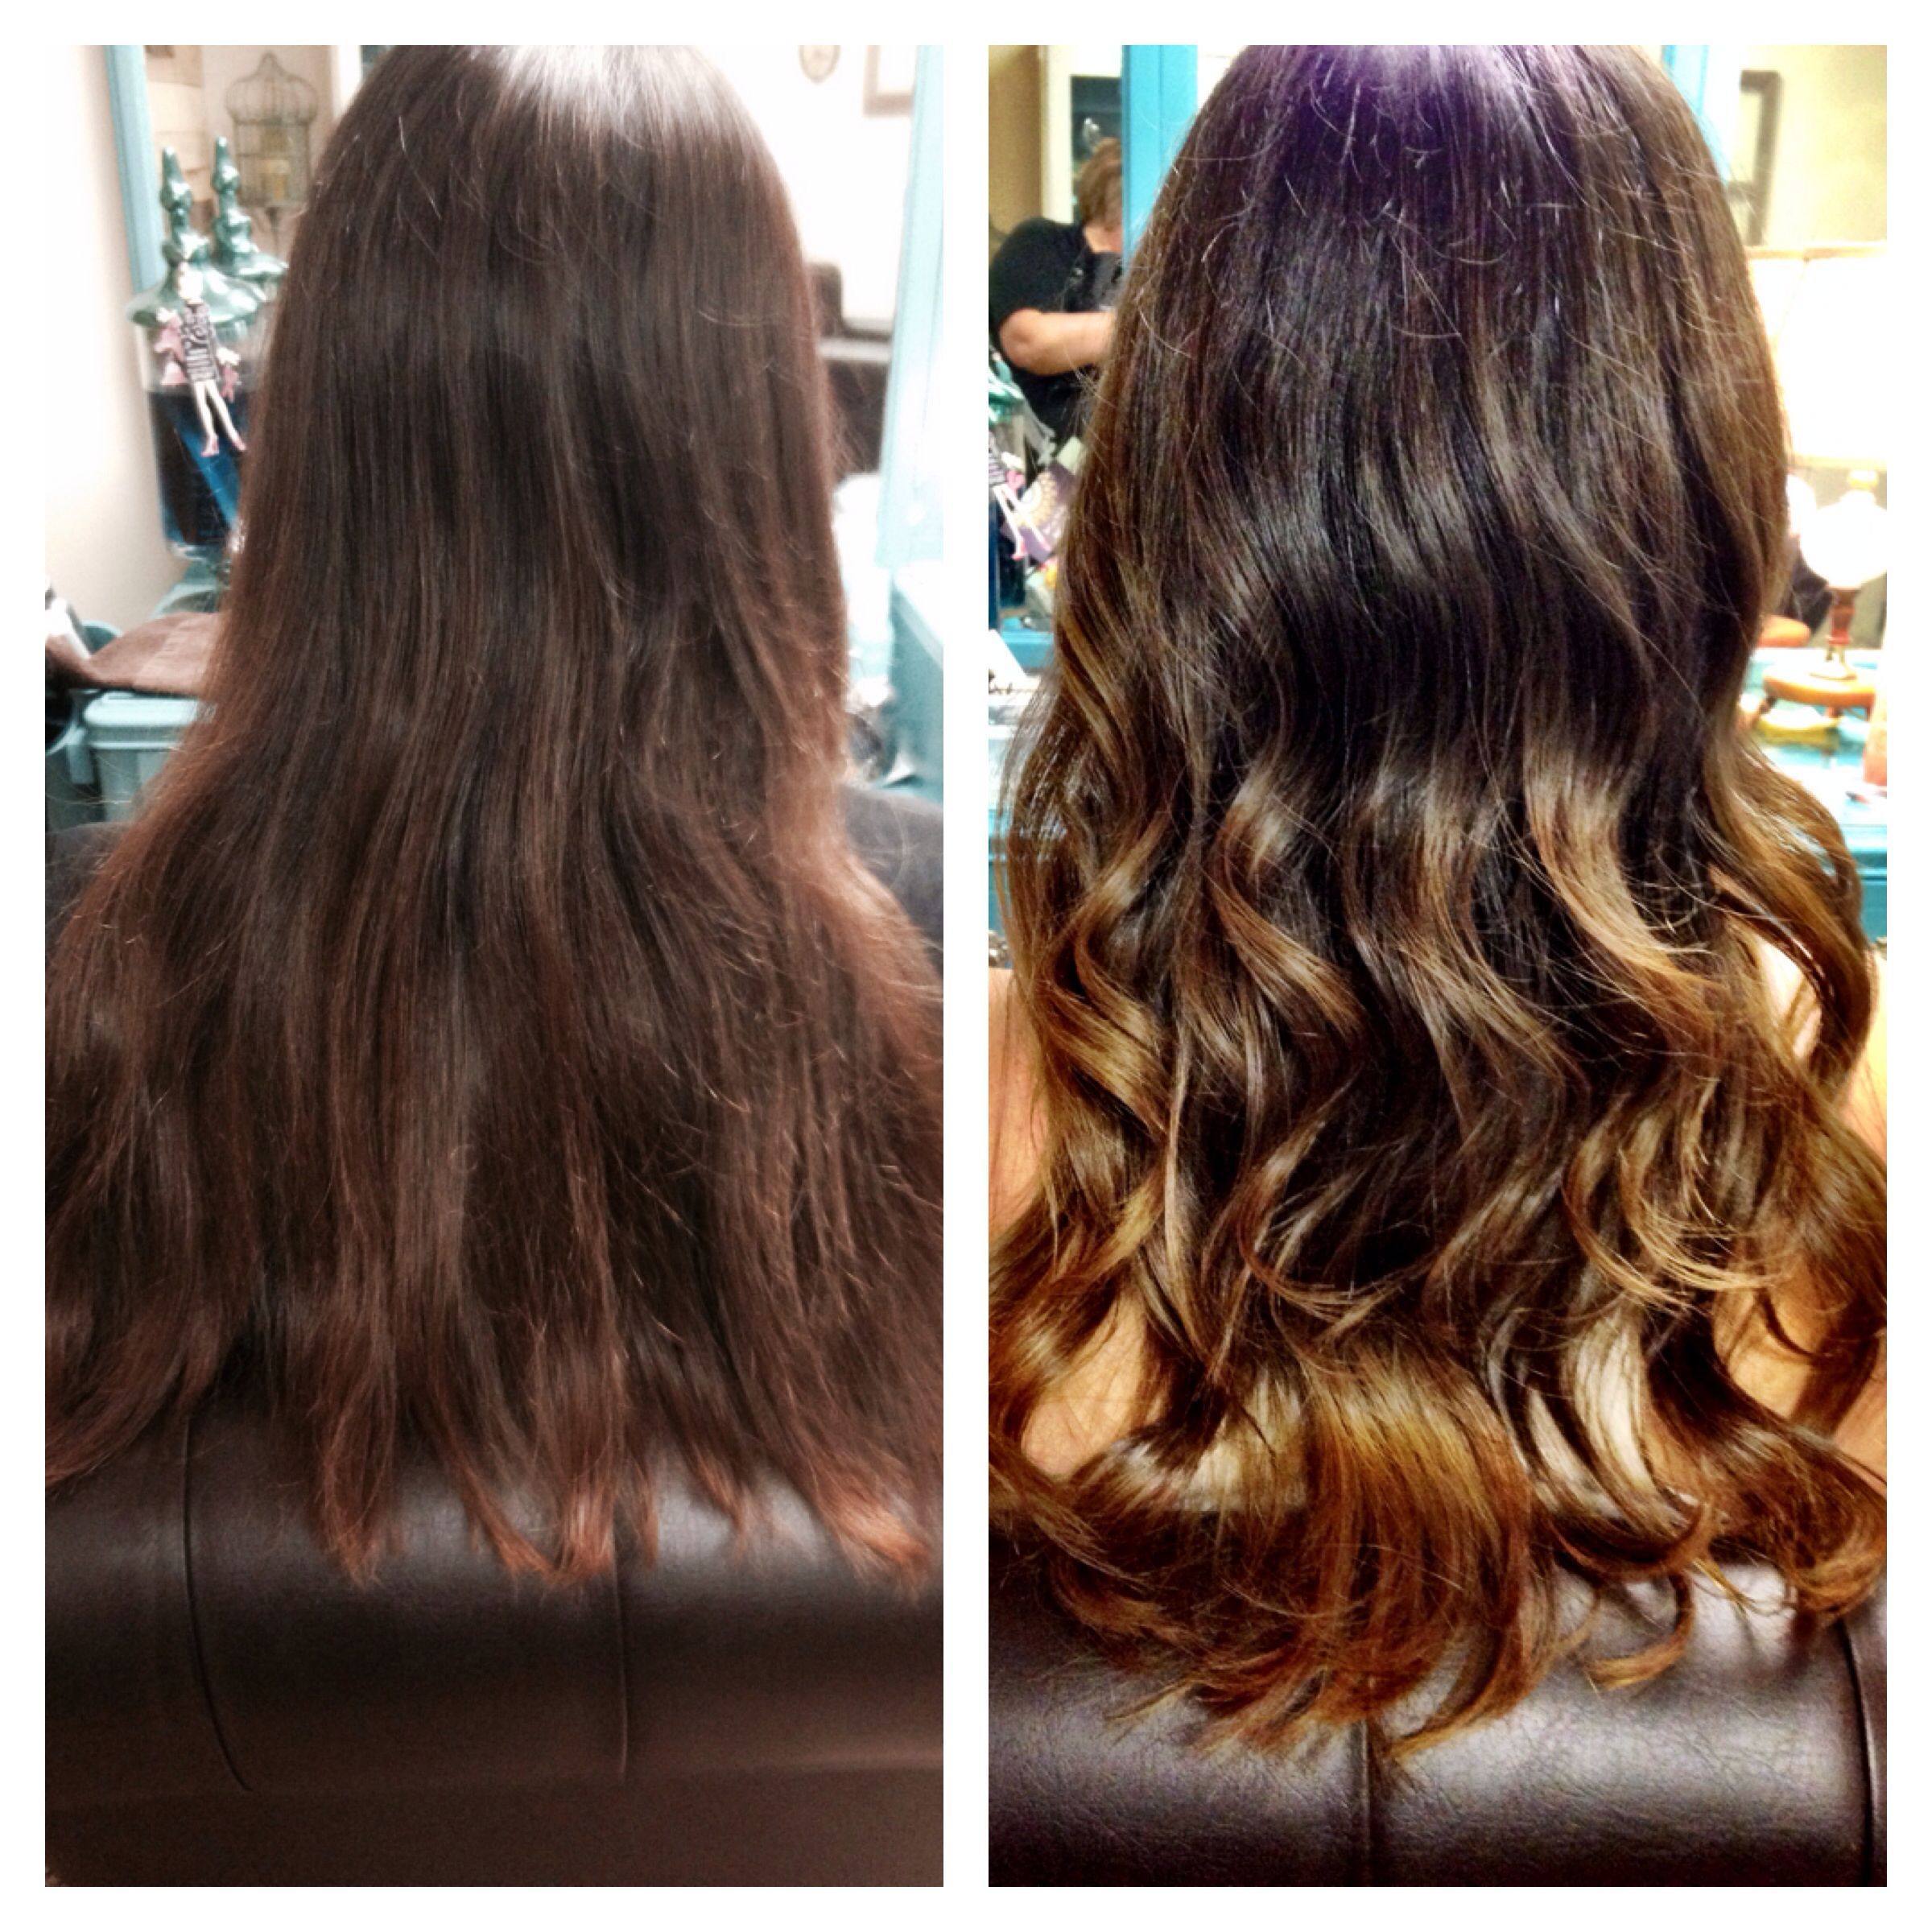 before after ombr balayage hair brown caramel. Black Bedroom Furniture Sets. Home Design Ideas